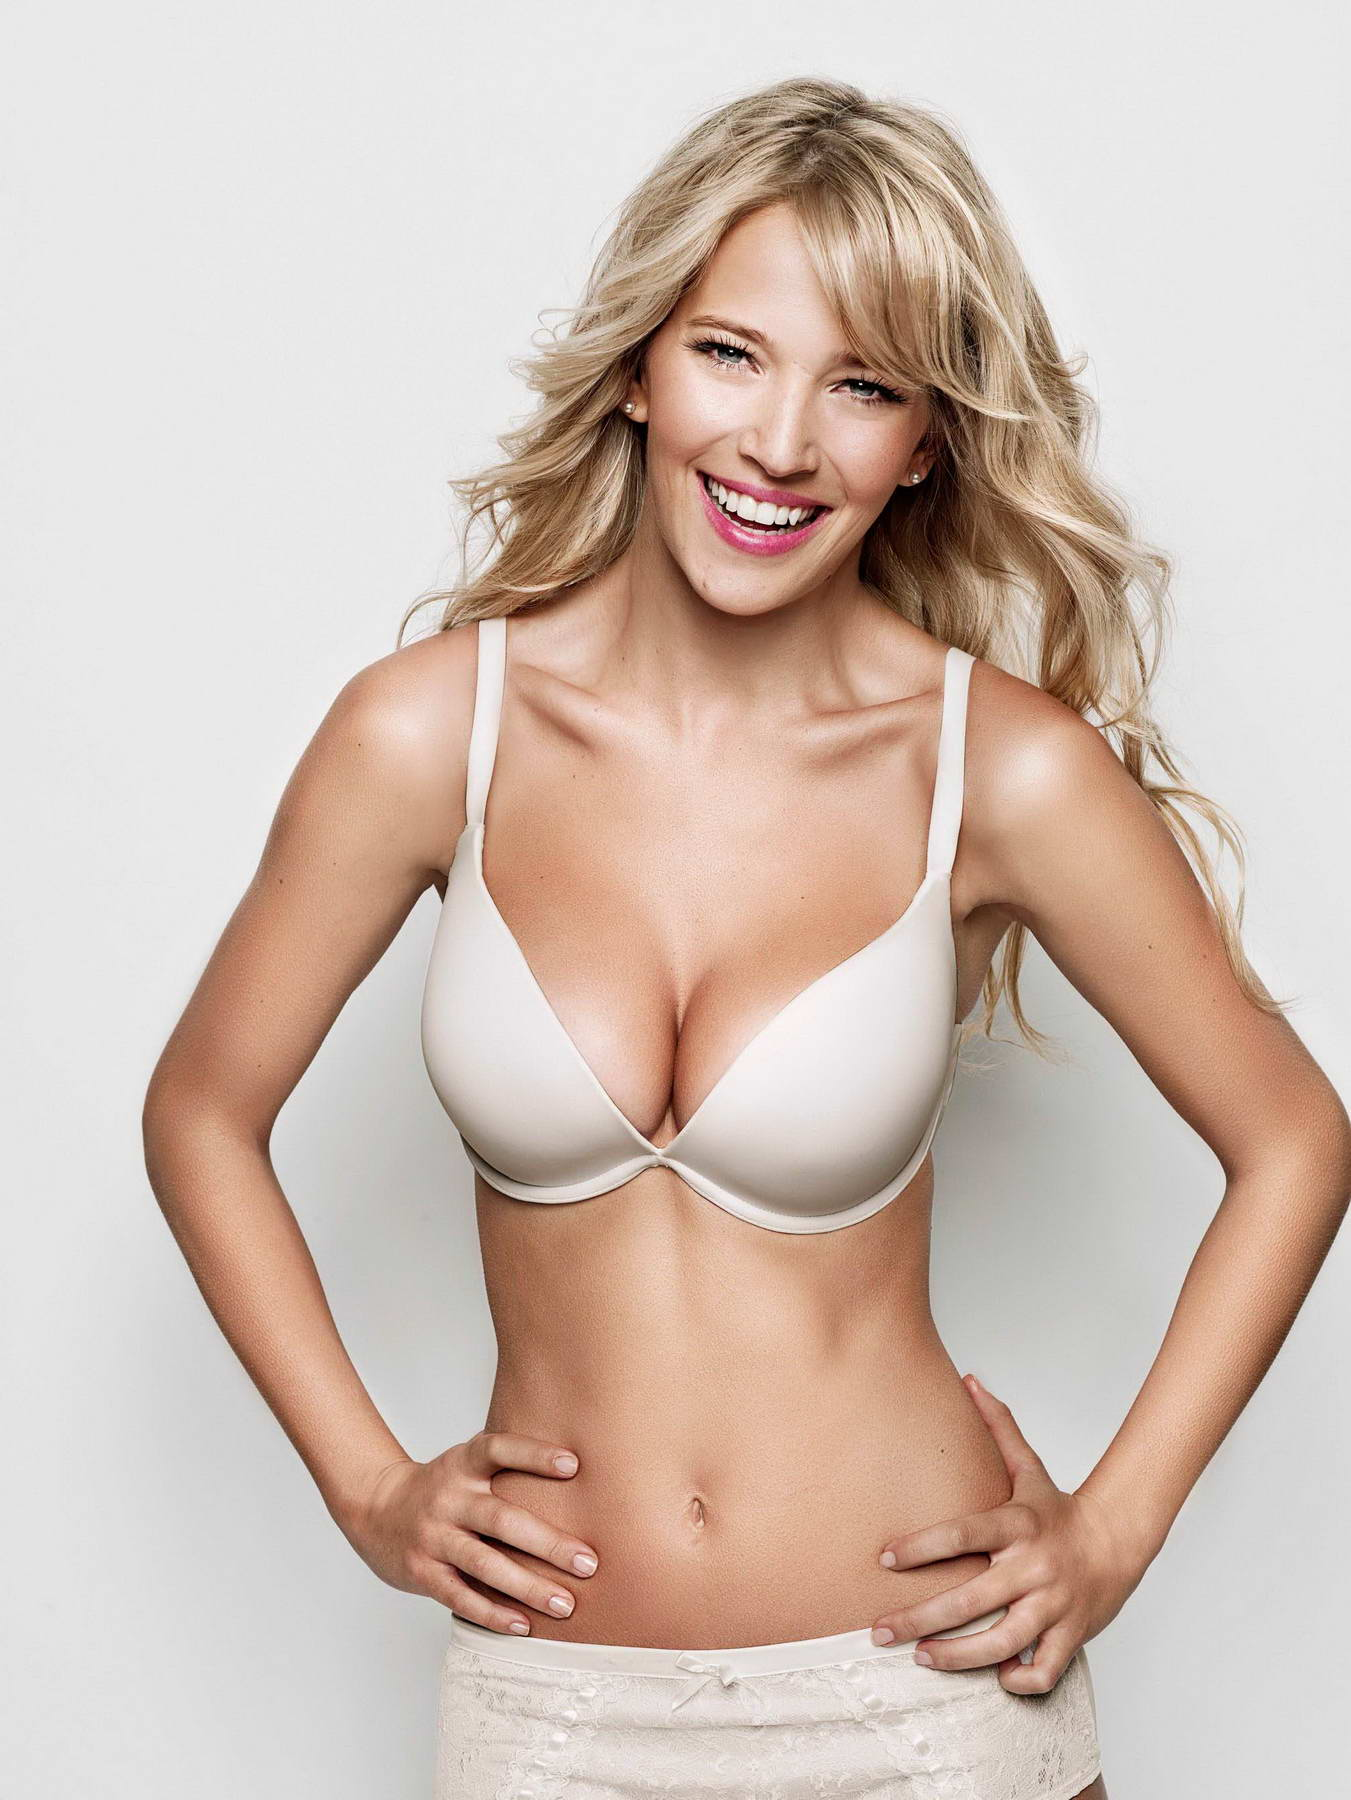 Luisana Lopilato Photoshoot for Ultimo Lingerie 2011 Campaign